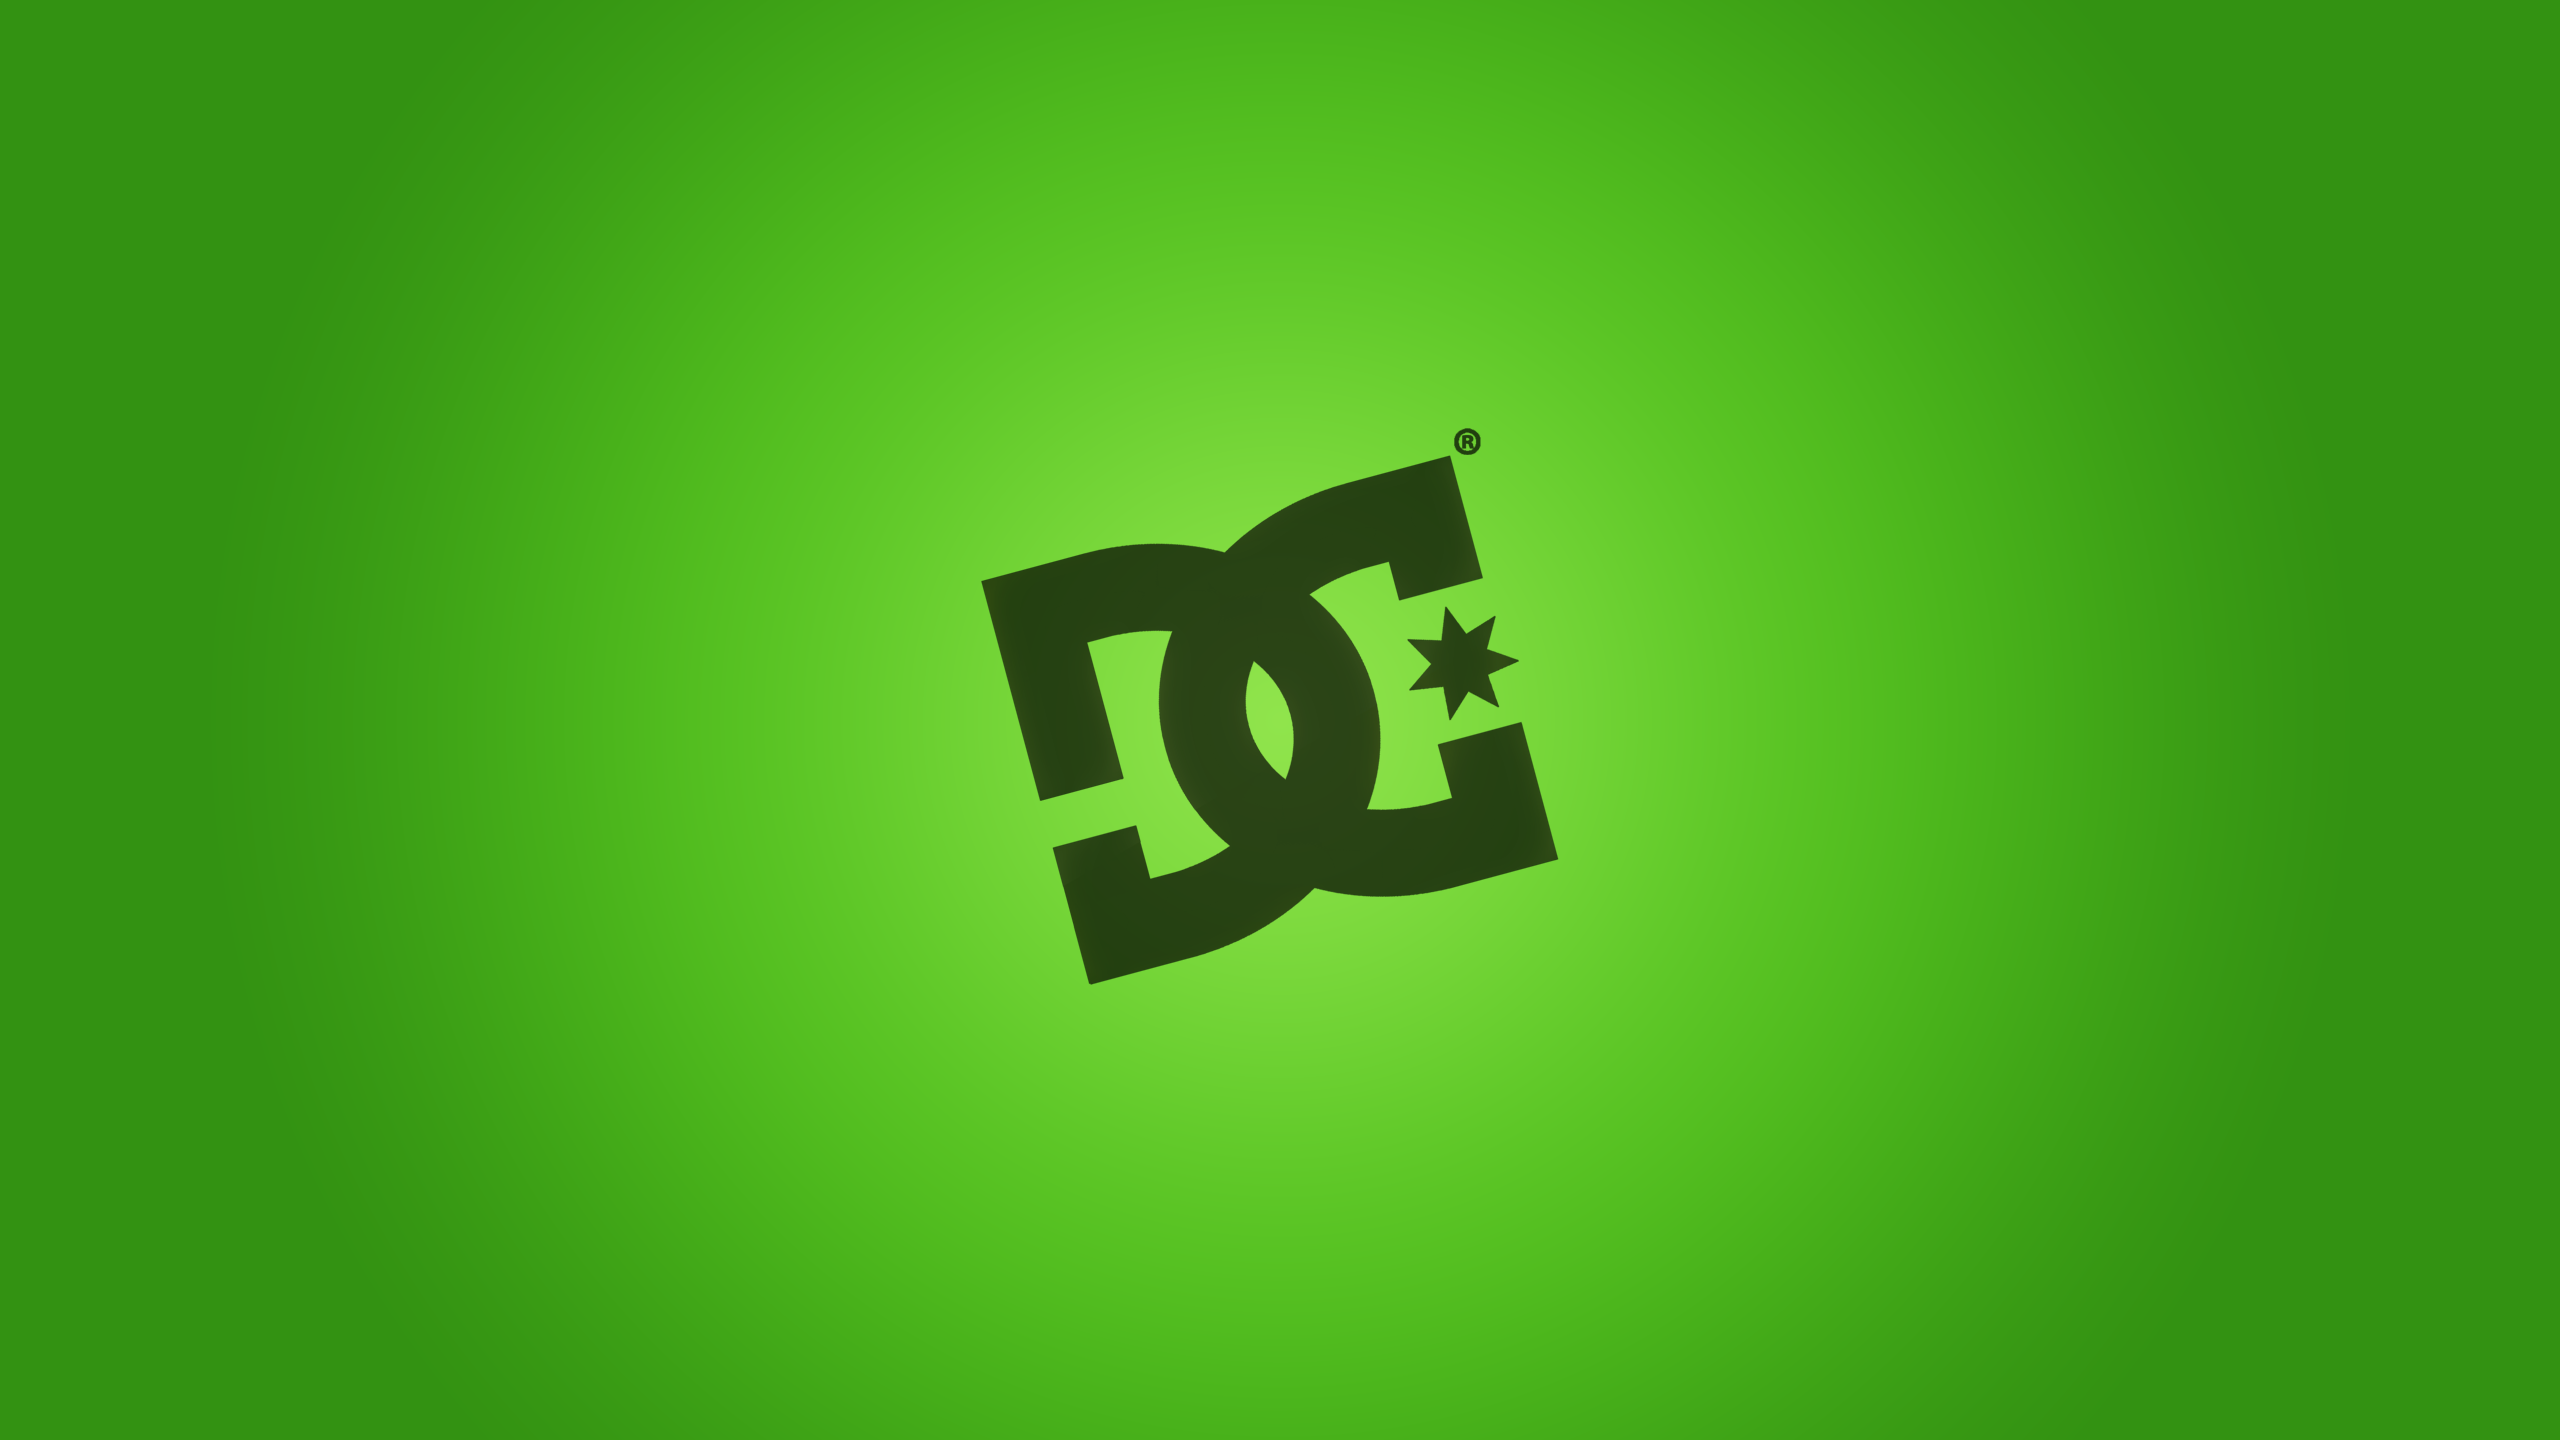 dc shoes logo 306119 Green DC Shoes Logo HD Wallpaper Background Image 2560x1440